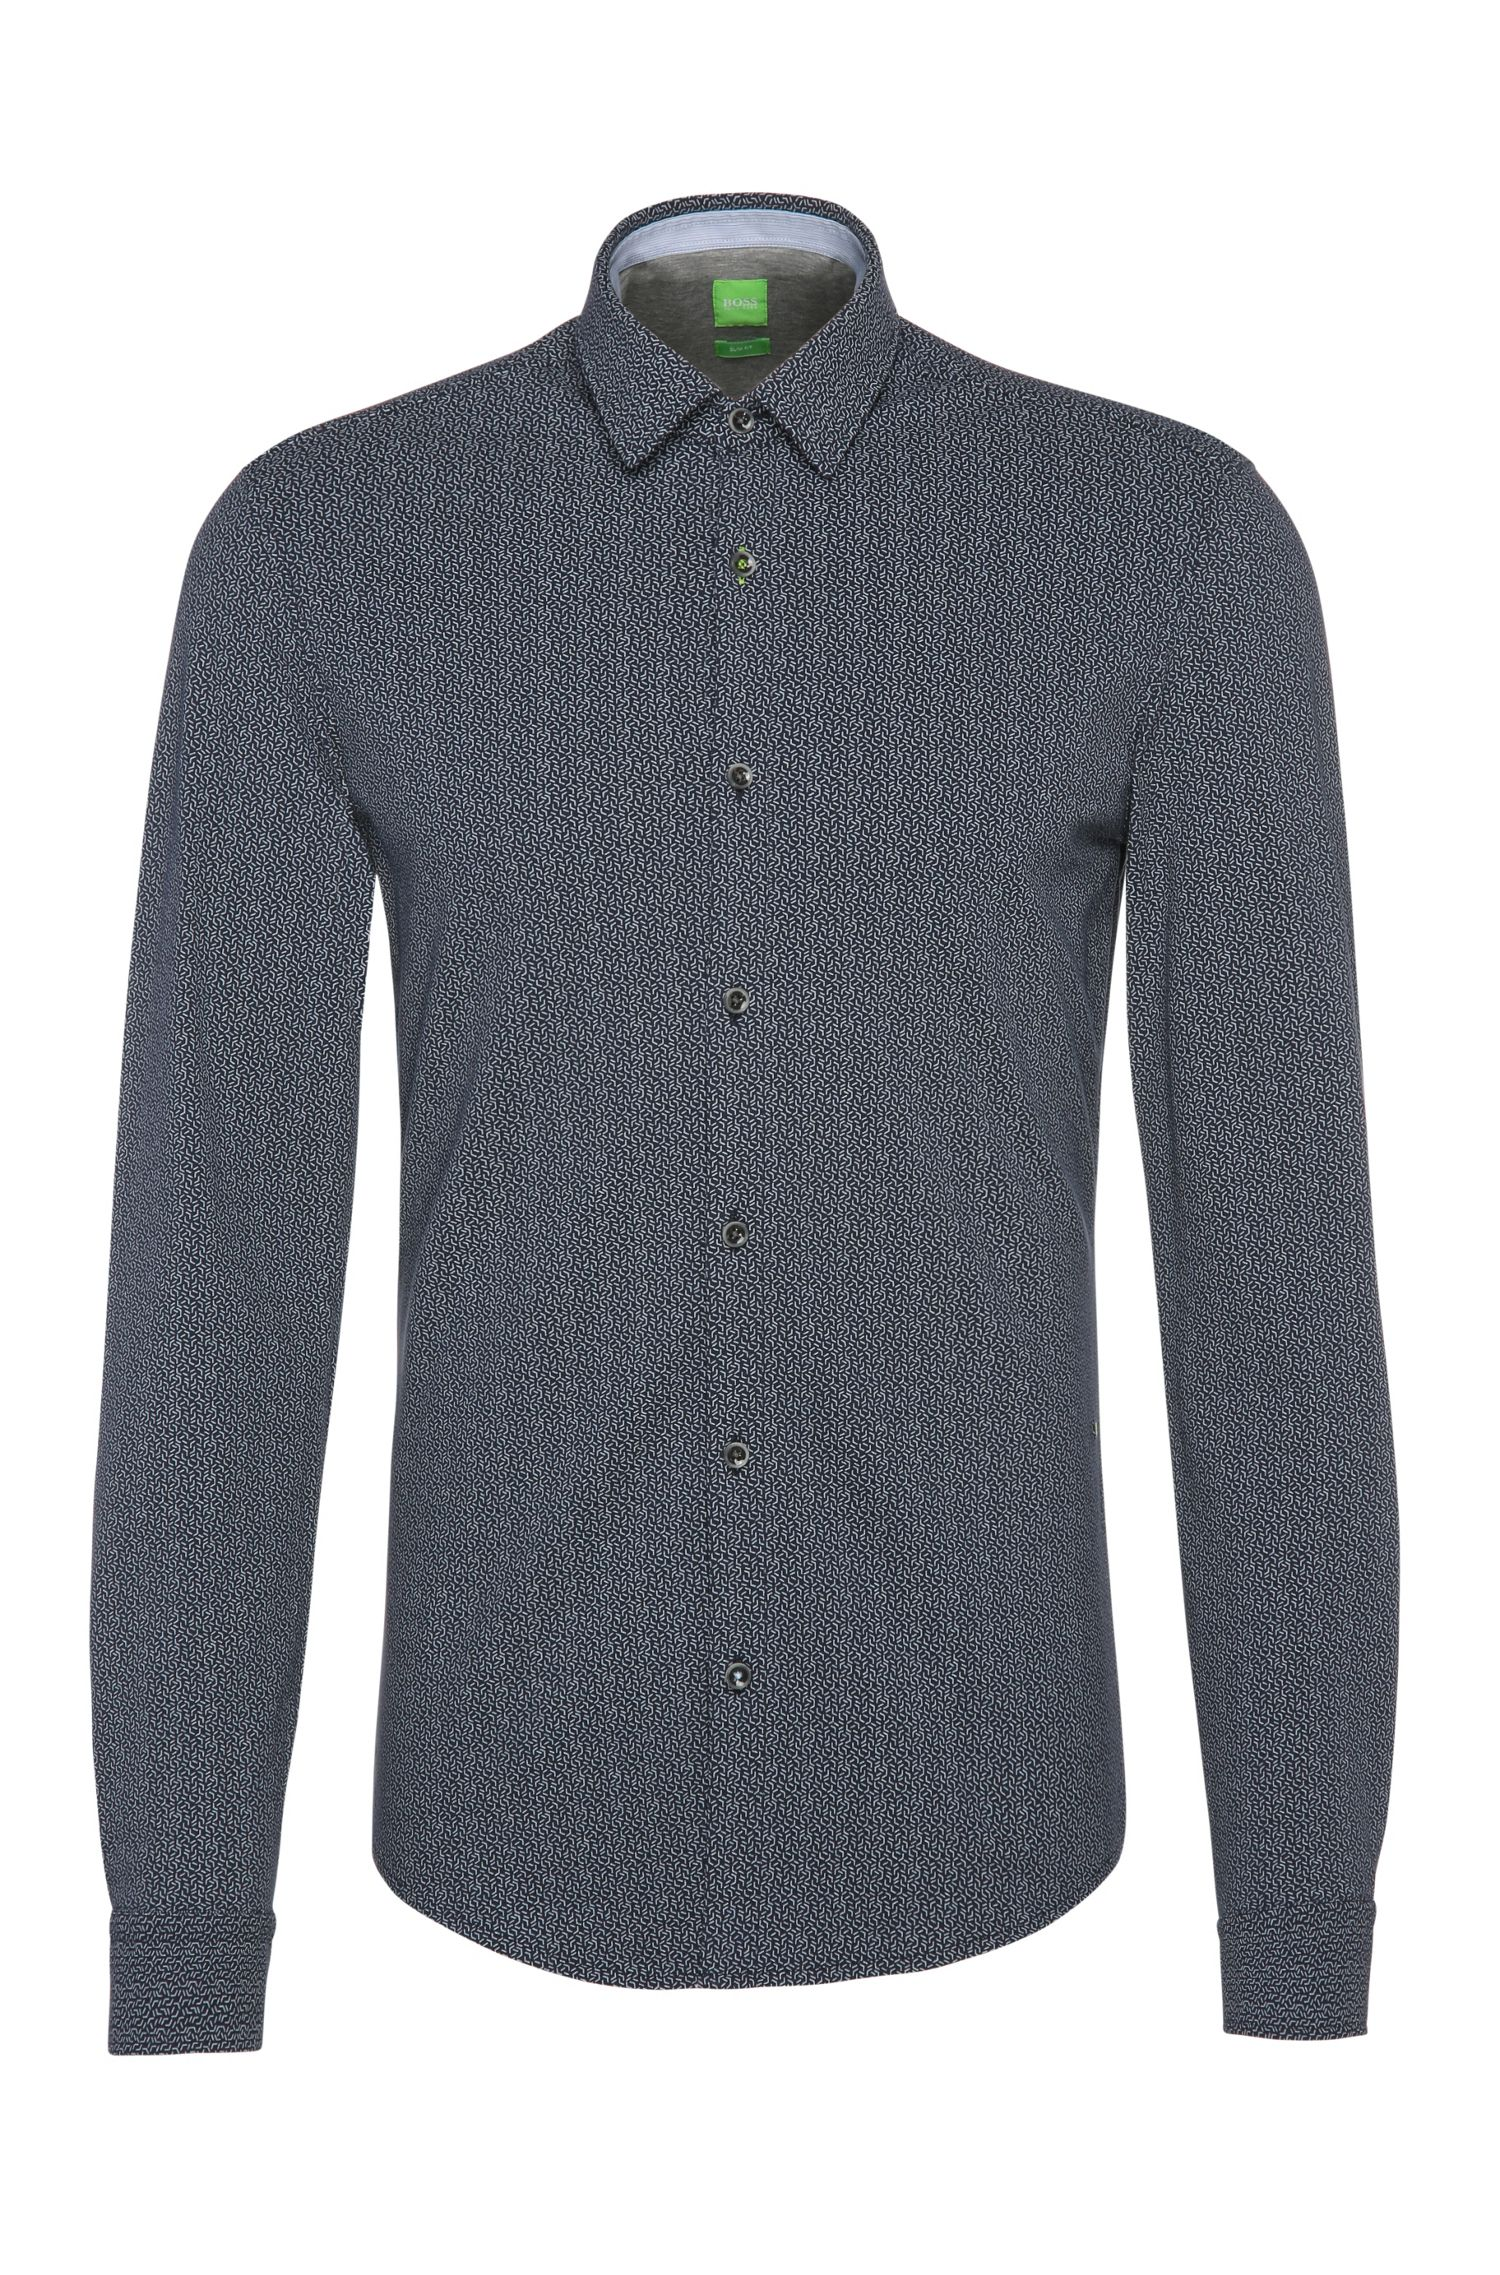 'Barbe' | Slim Fit, Stretch Cotton Jersey Button Down Shirt